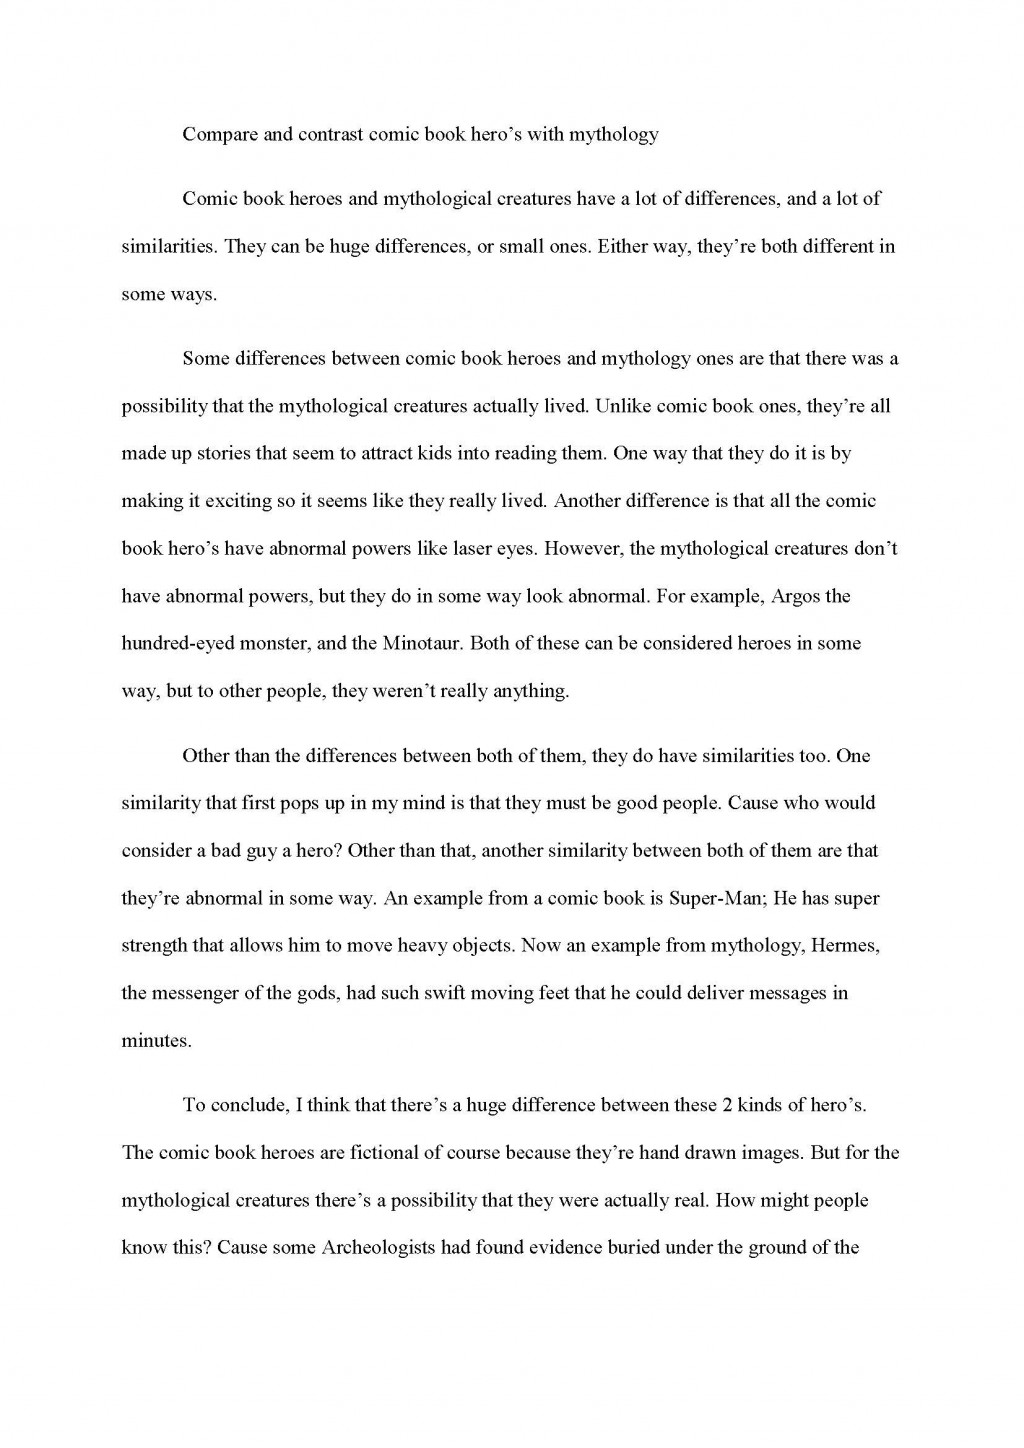 002 Essay Example Comparison And Contrast Examples Compare Frightening Free Pdf College Large